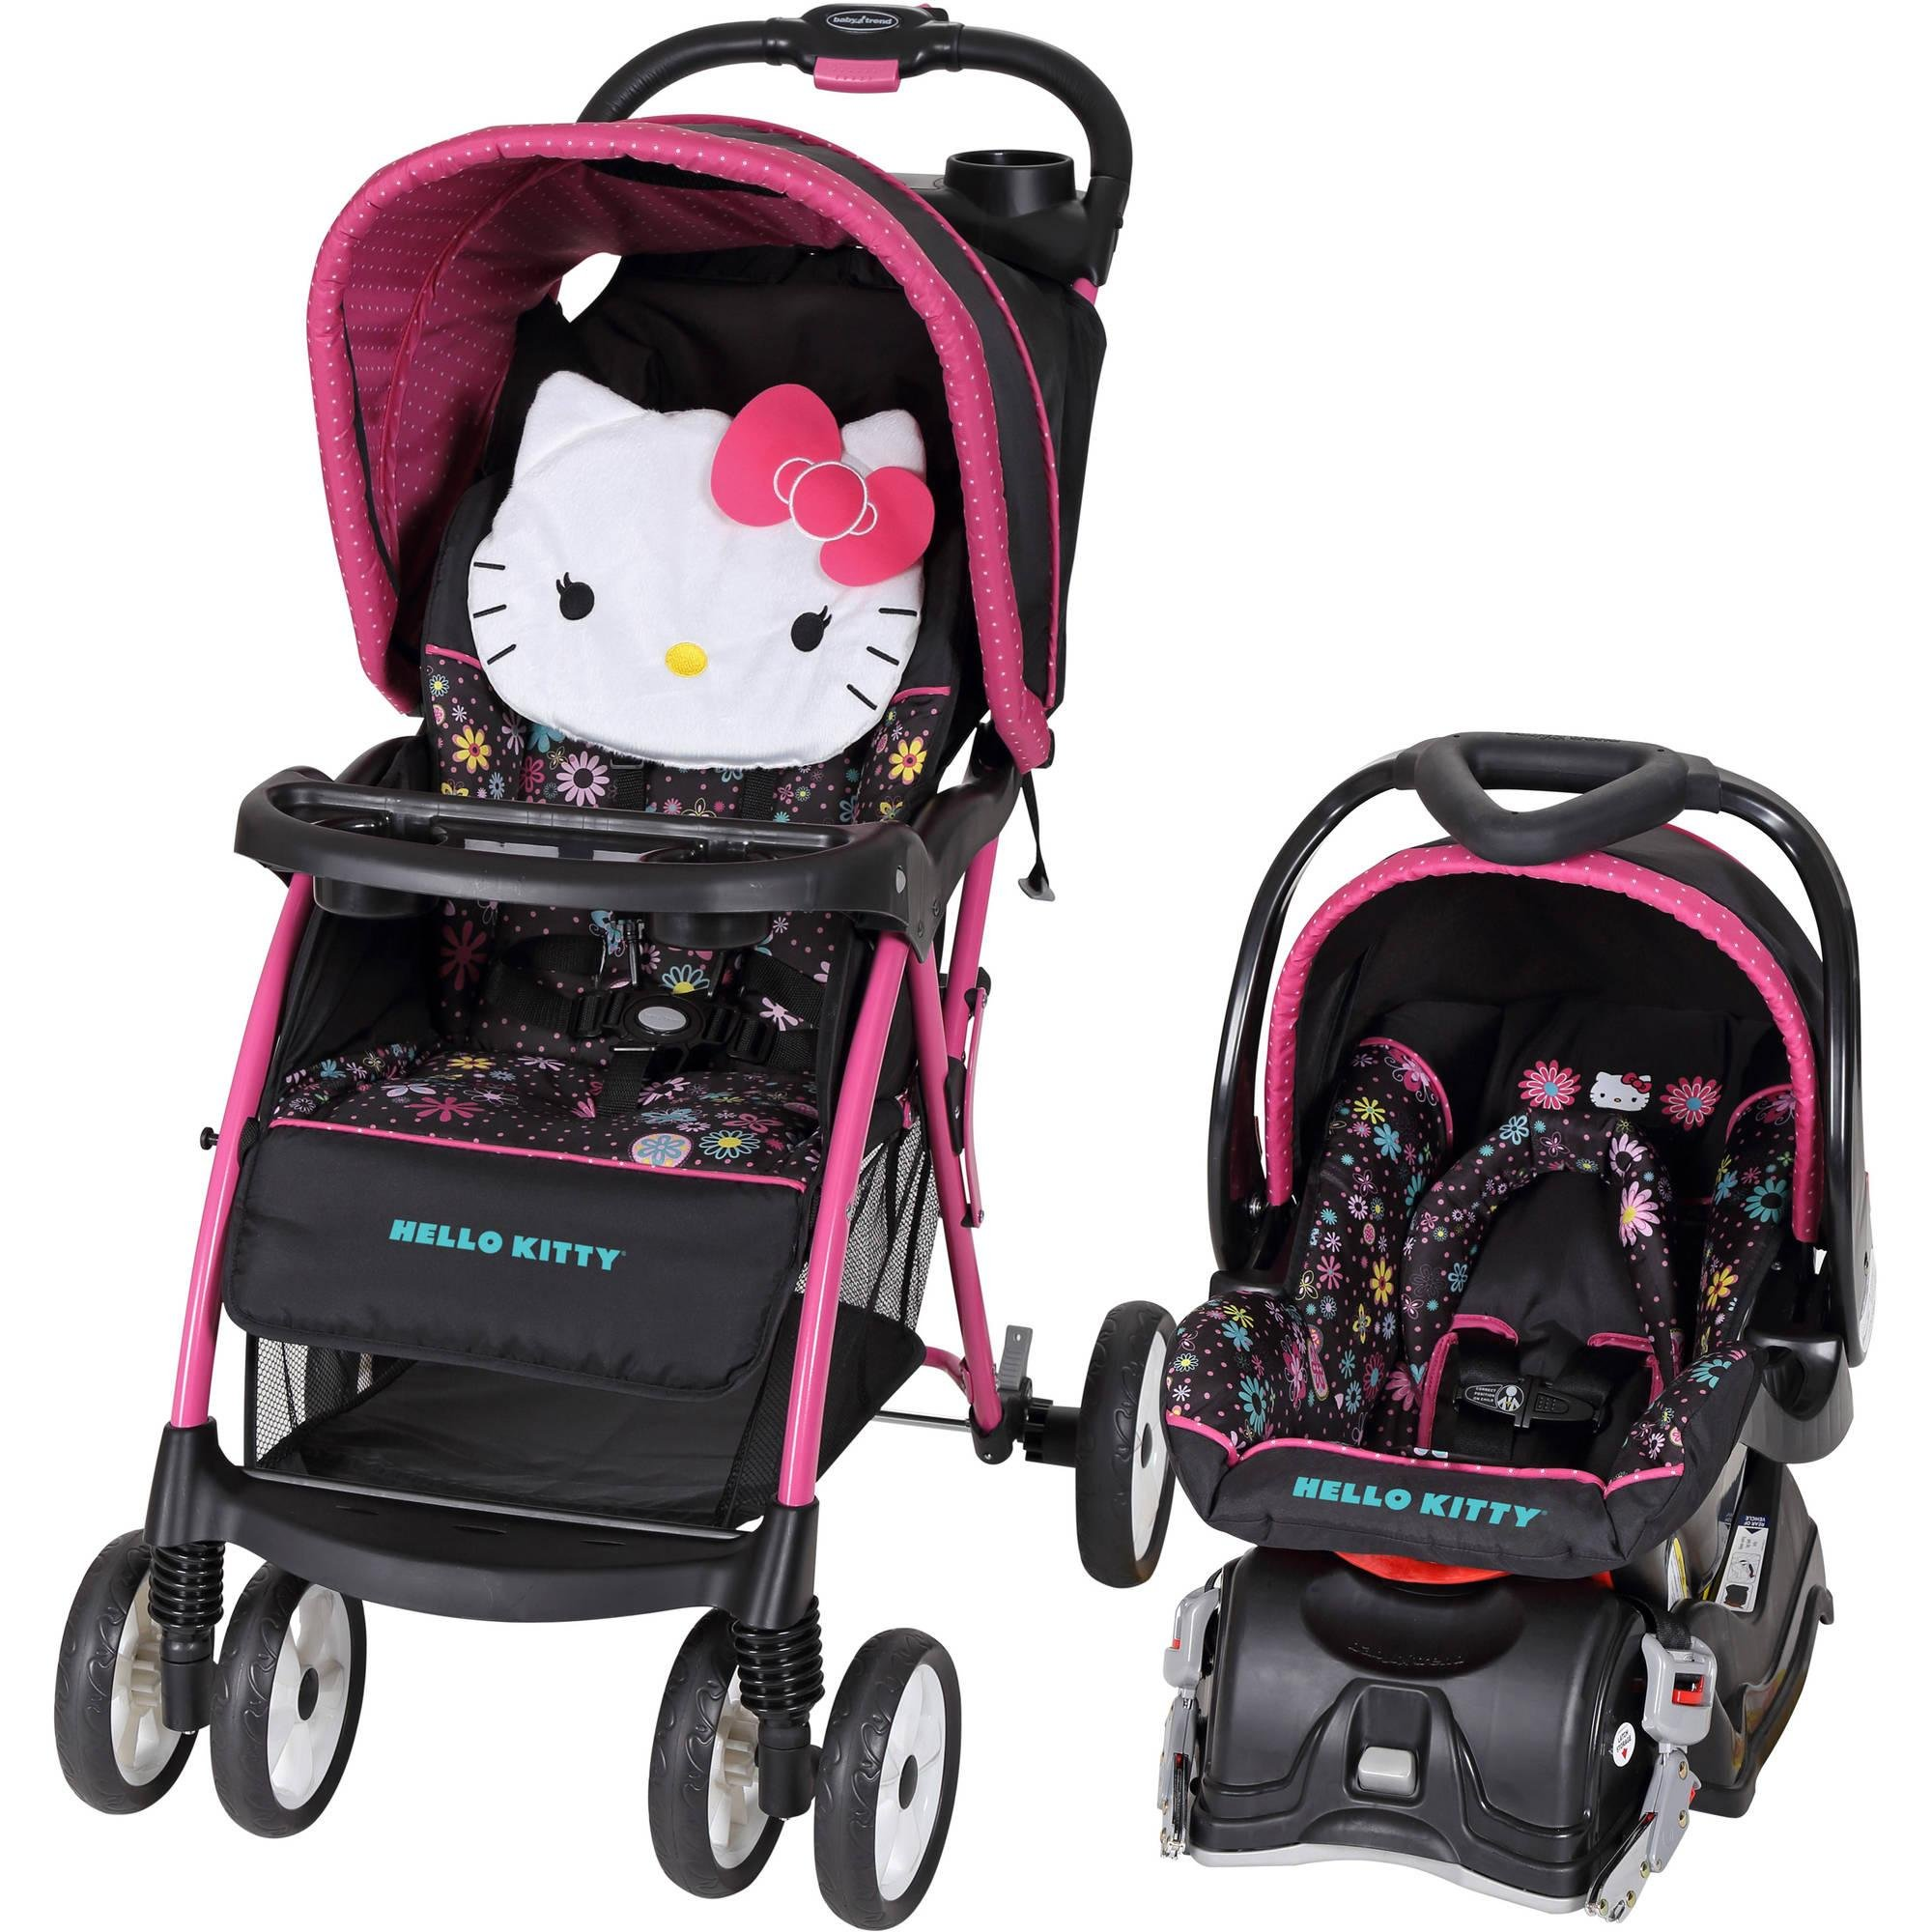 88326572d071 Buy Baby Trend Hello Kitty Venture Travel System in Cheap Price on ...